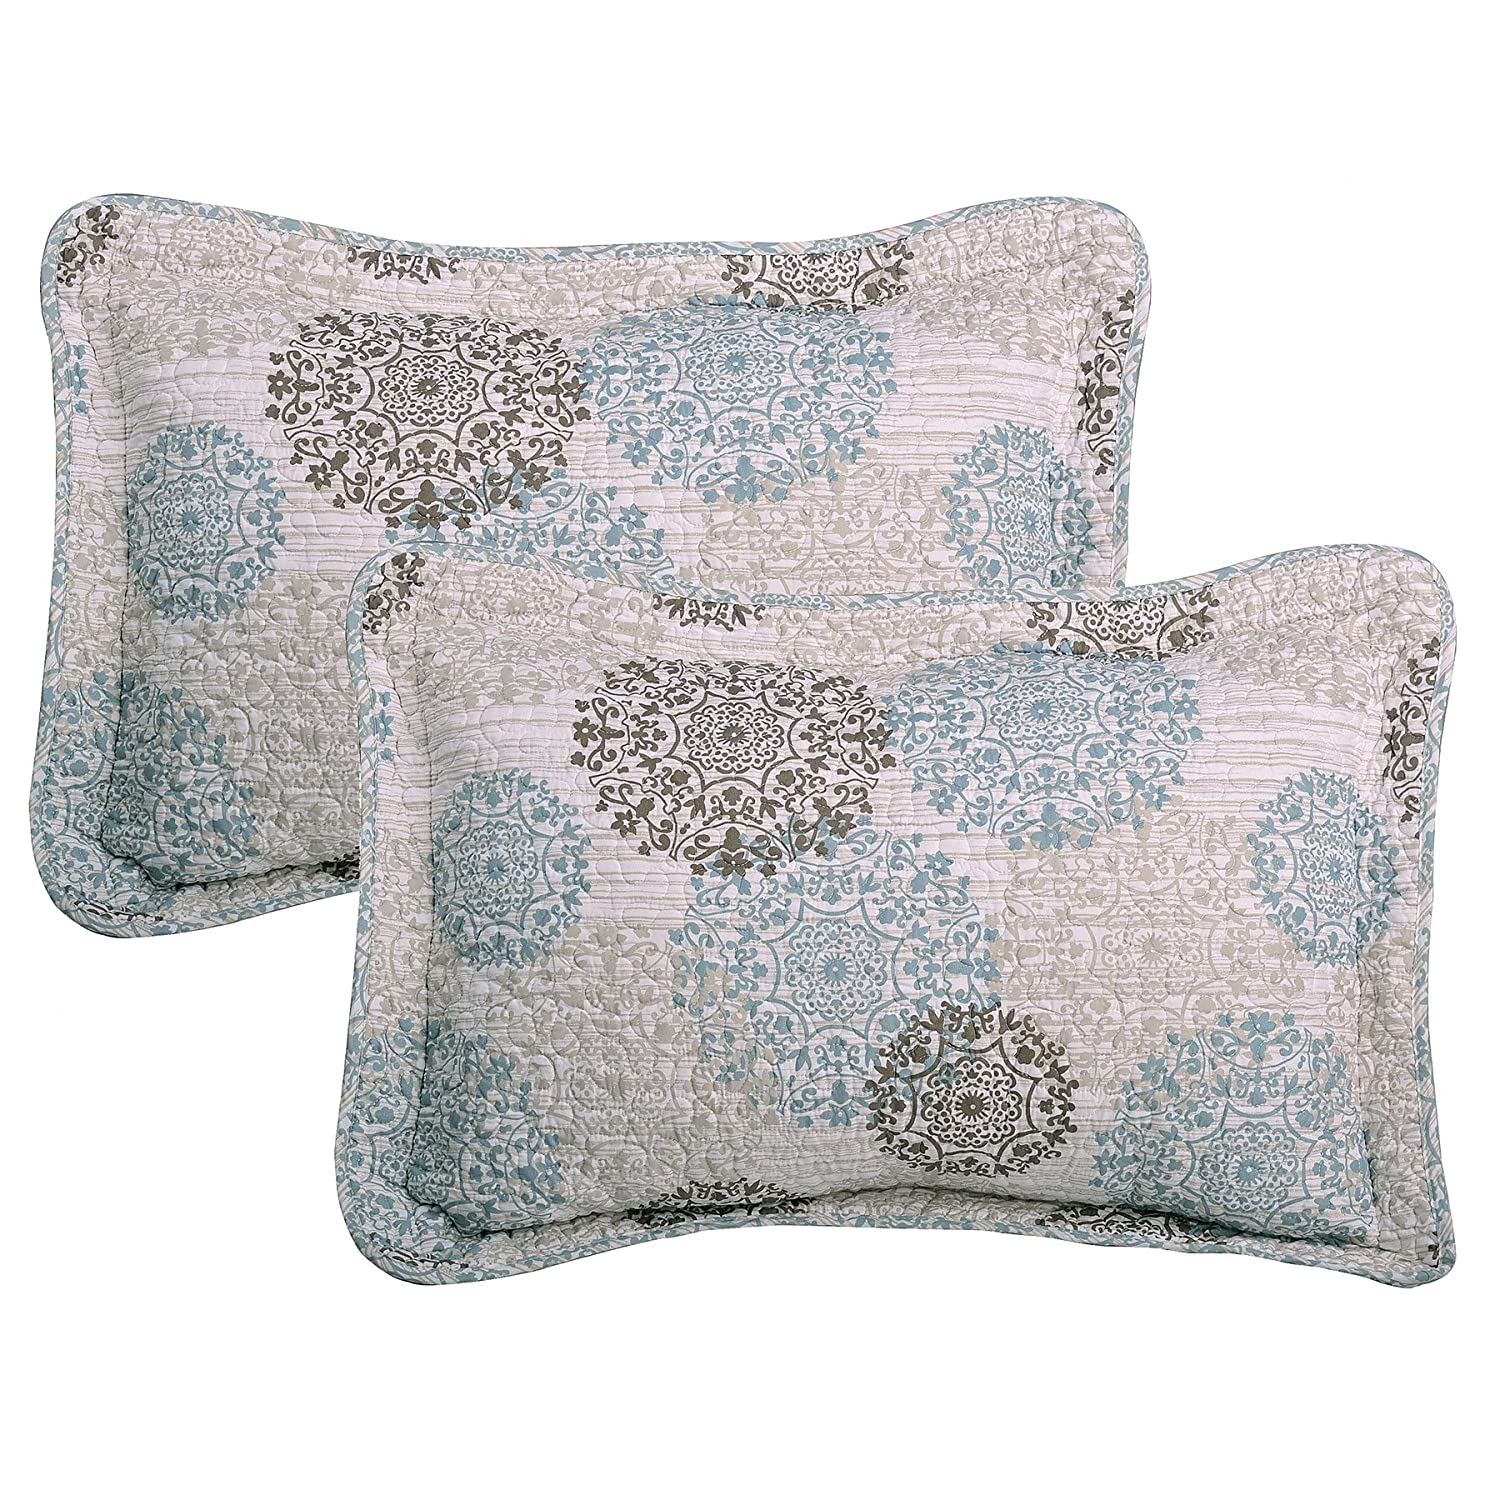 Serenta 6 Piece Marina Medallion Printed Quilted Bed Spread Set Queen 90 x 90 Cameo Blue Queen 90 x 90 BNF Home BNFPMQ6QMMD